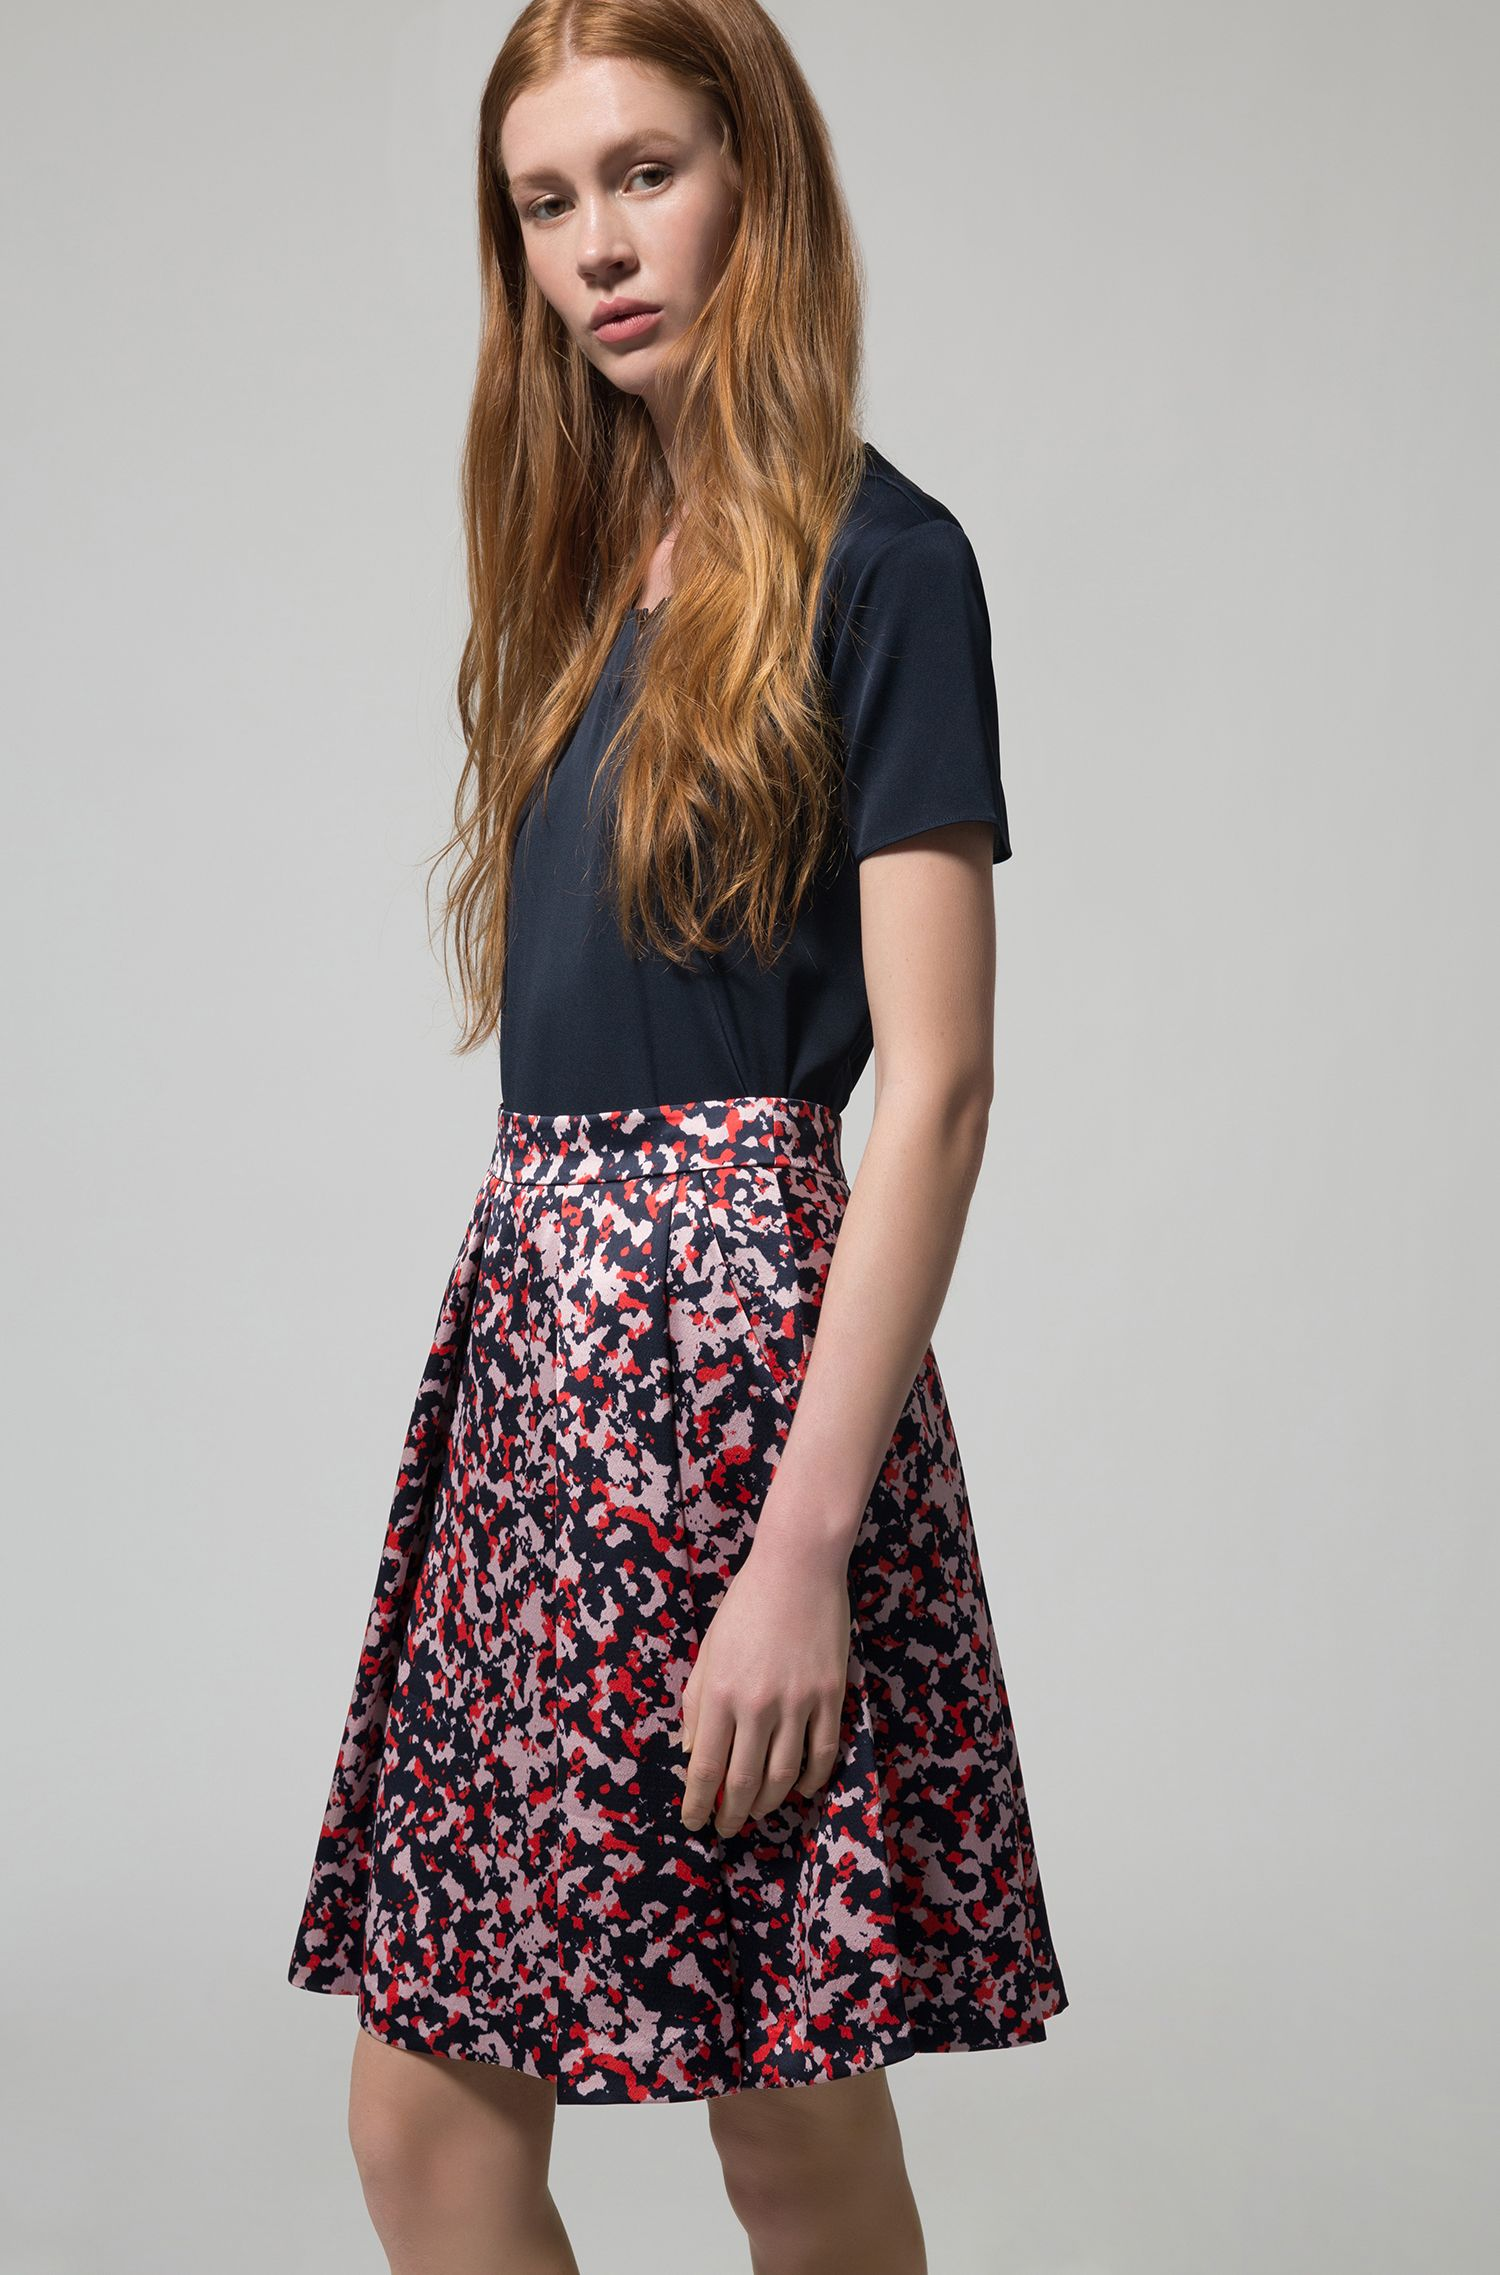 High-waisted skirt in hammered camouflage fabric